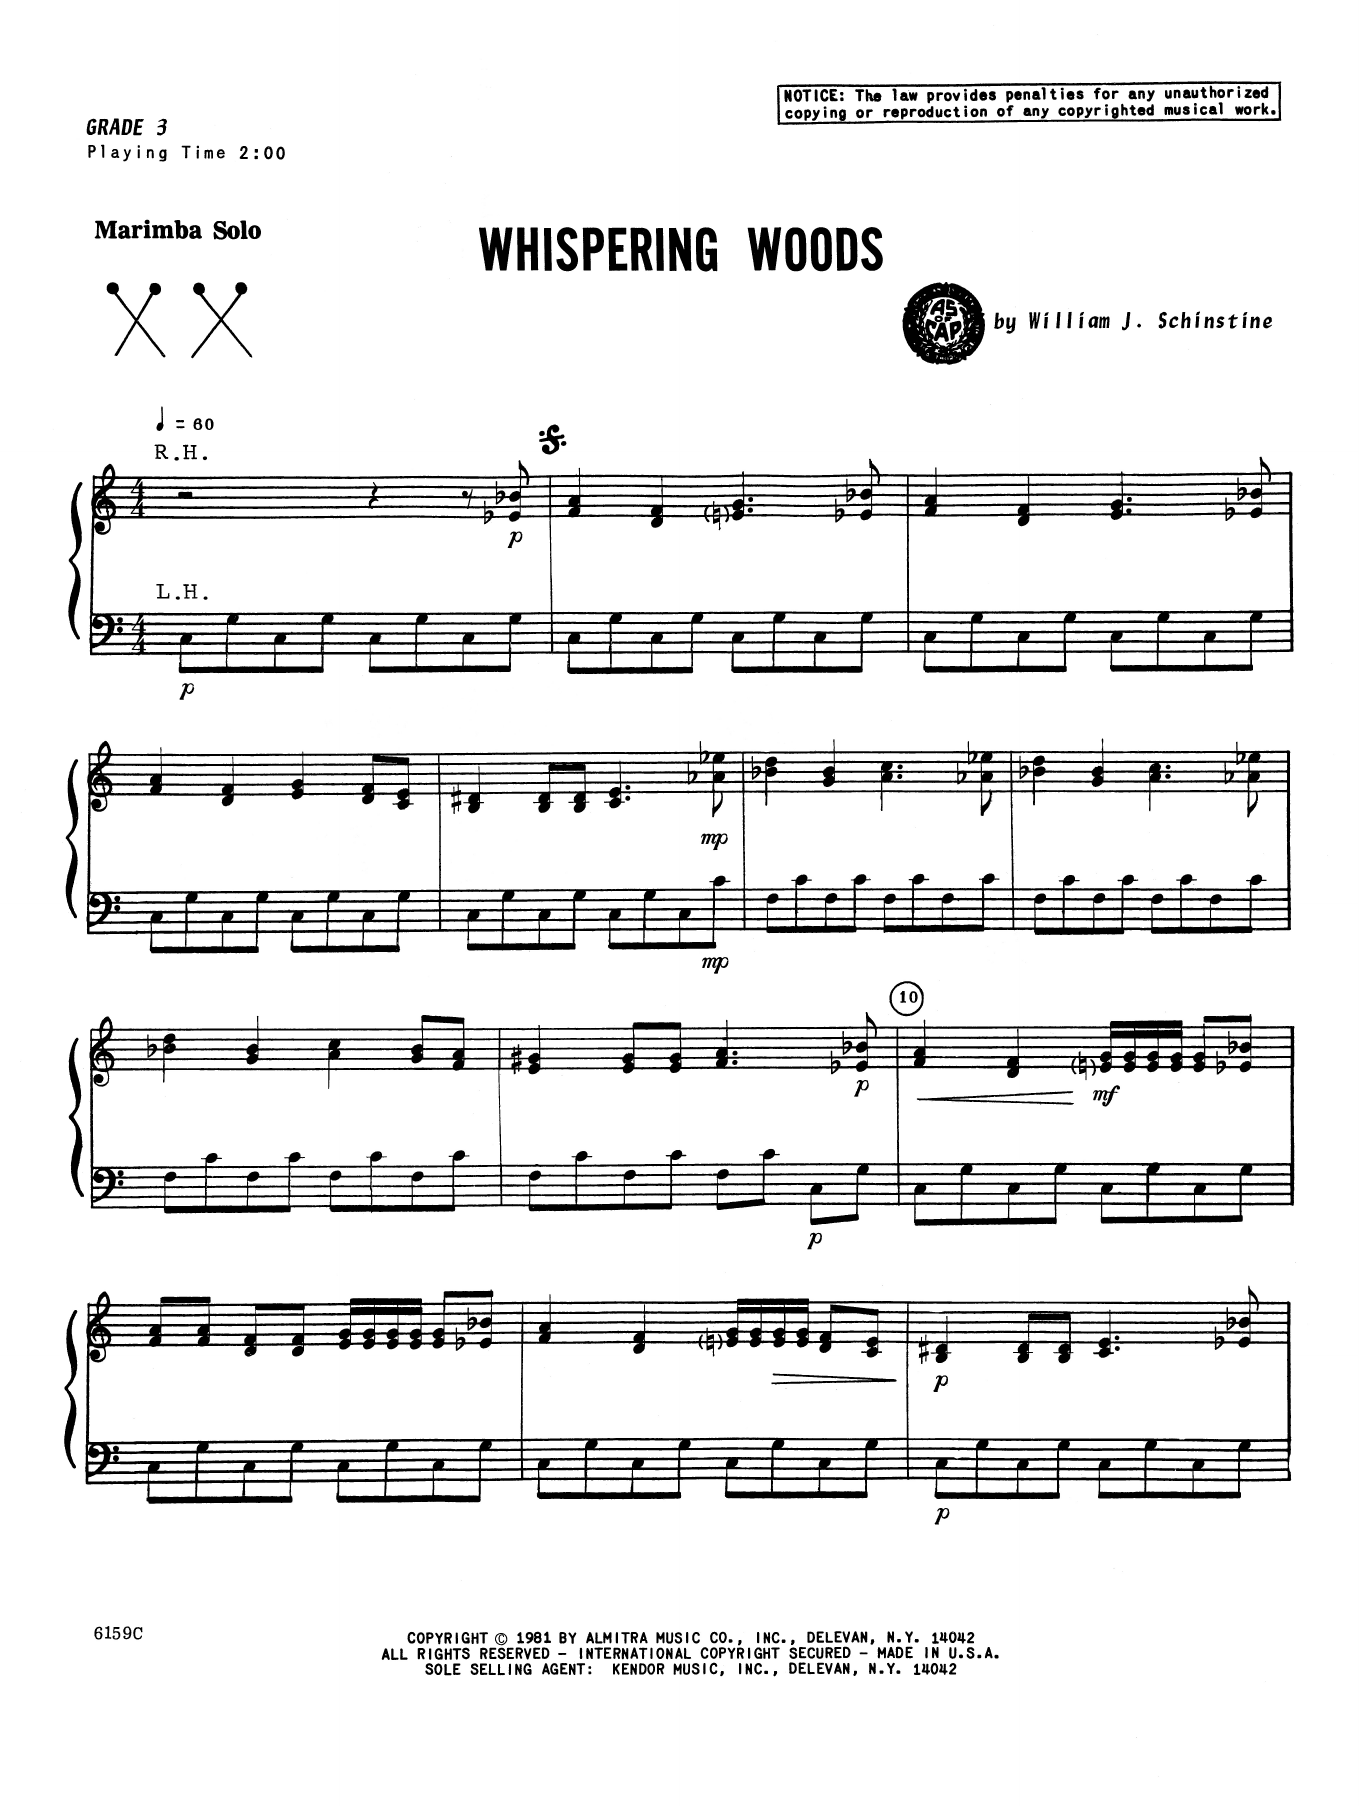 Whispering Woods Partition Digitale